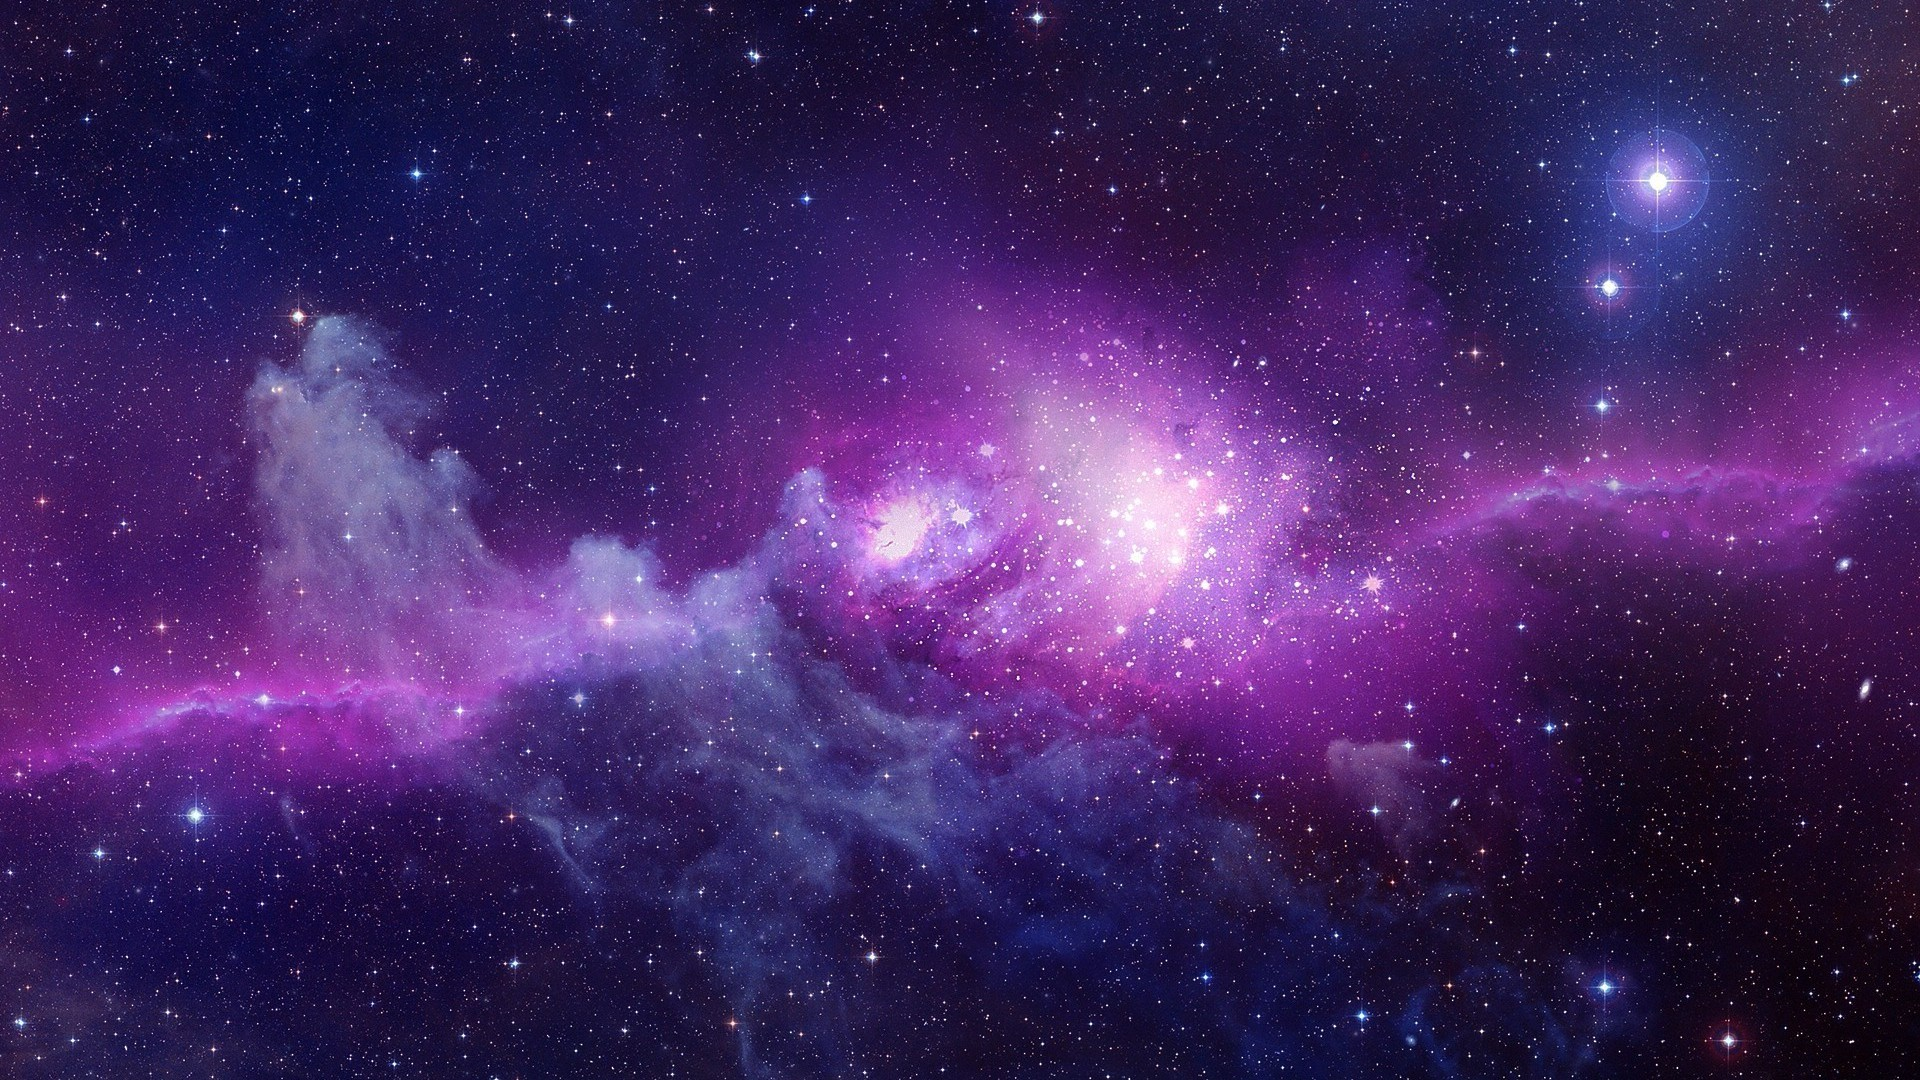 HD Purple Space Wallpaper  65  images  1920x1080 HD Purple Space Wallpaper  Galaxy Wallpaper Hd wallpaper   1244508